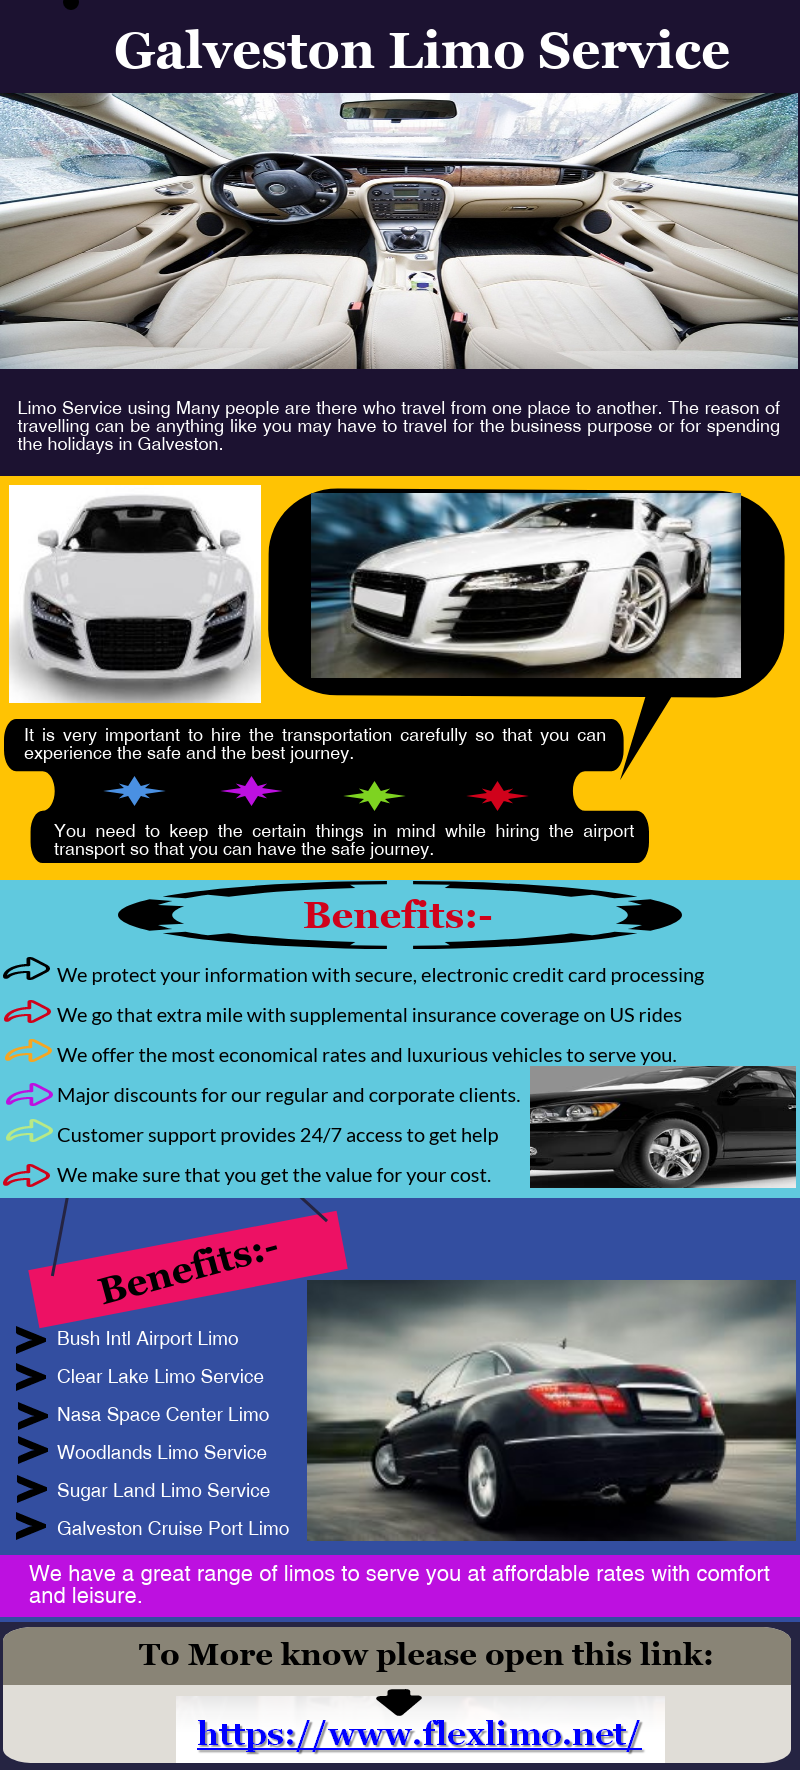 Elegant Galveston Limo Service Flexlimo Provide Also Be Used To Help You In Limo  Services. Or